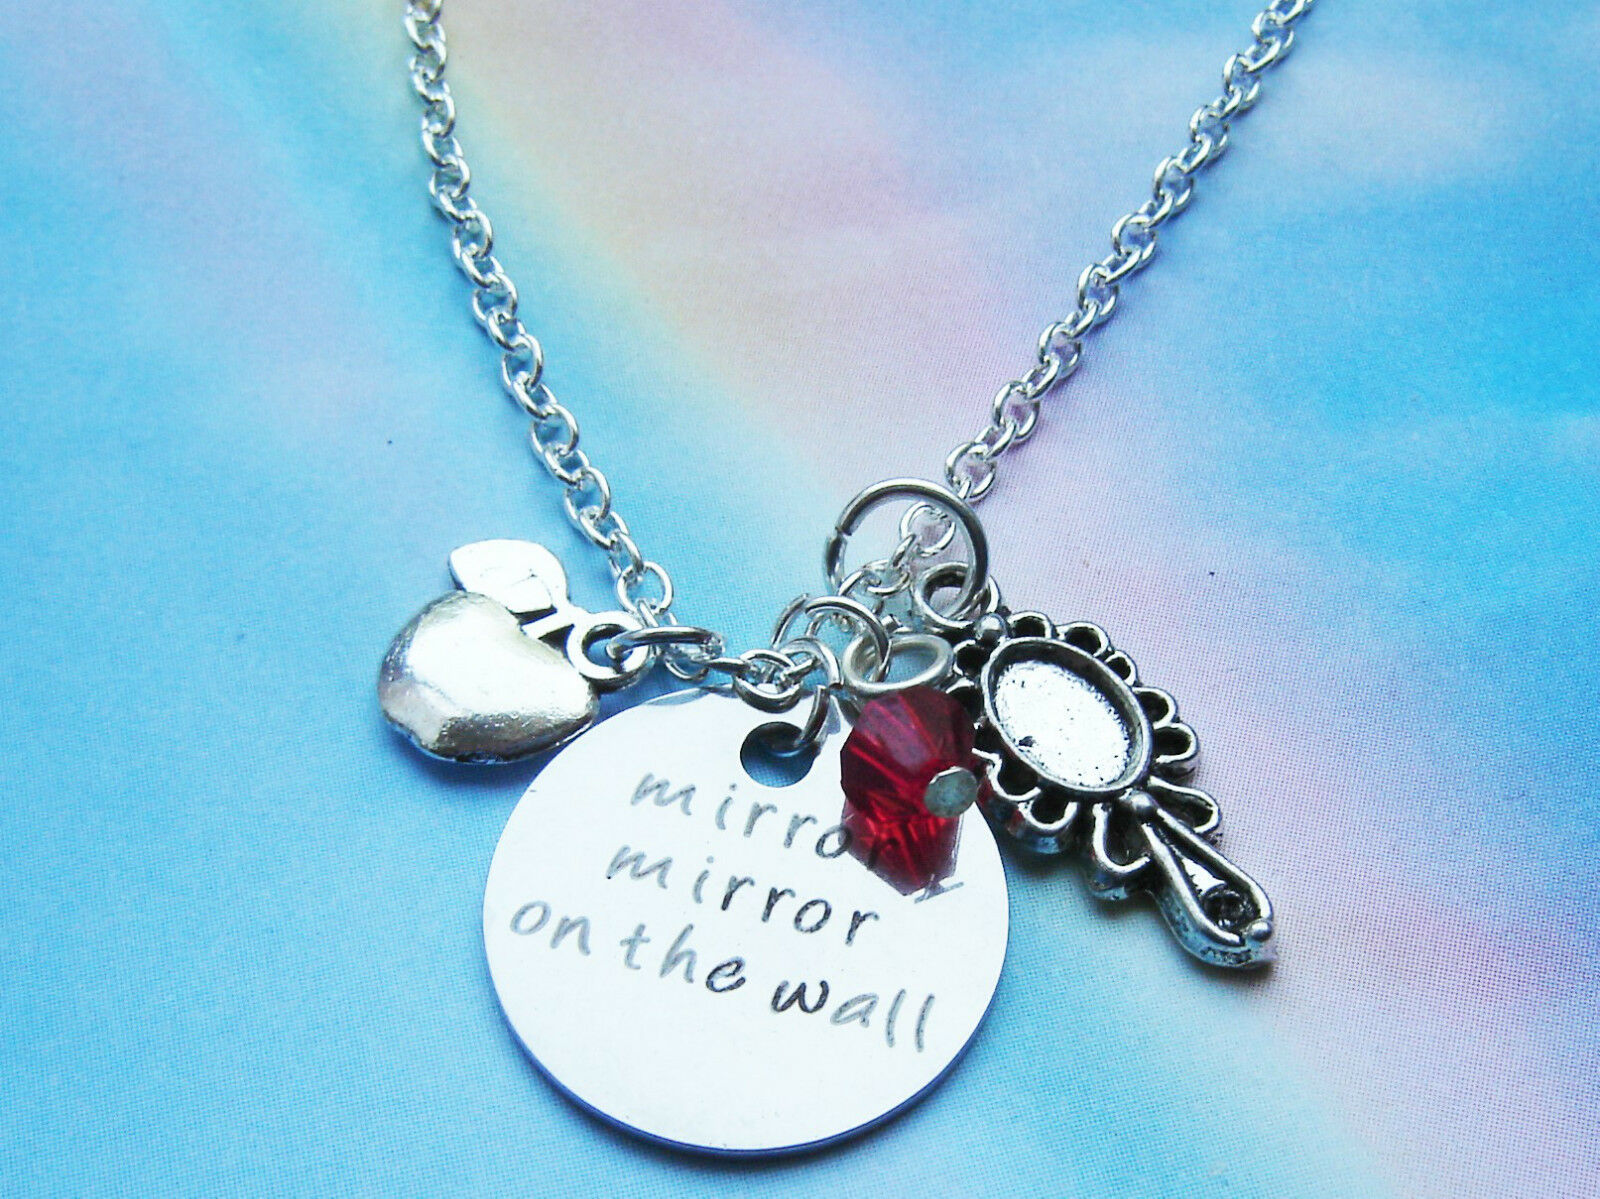 Mirror Mirror On The Wall Charms Necklace Snow White Quote Themed